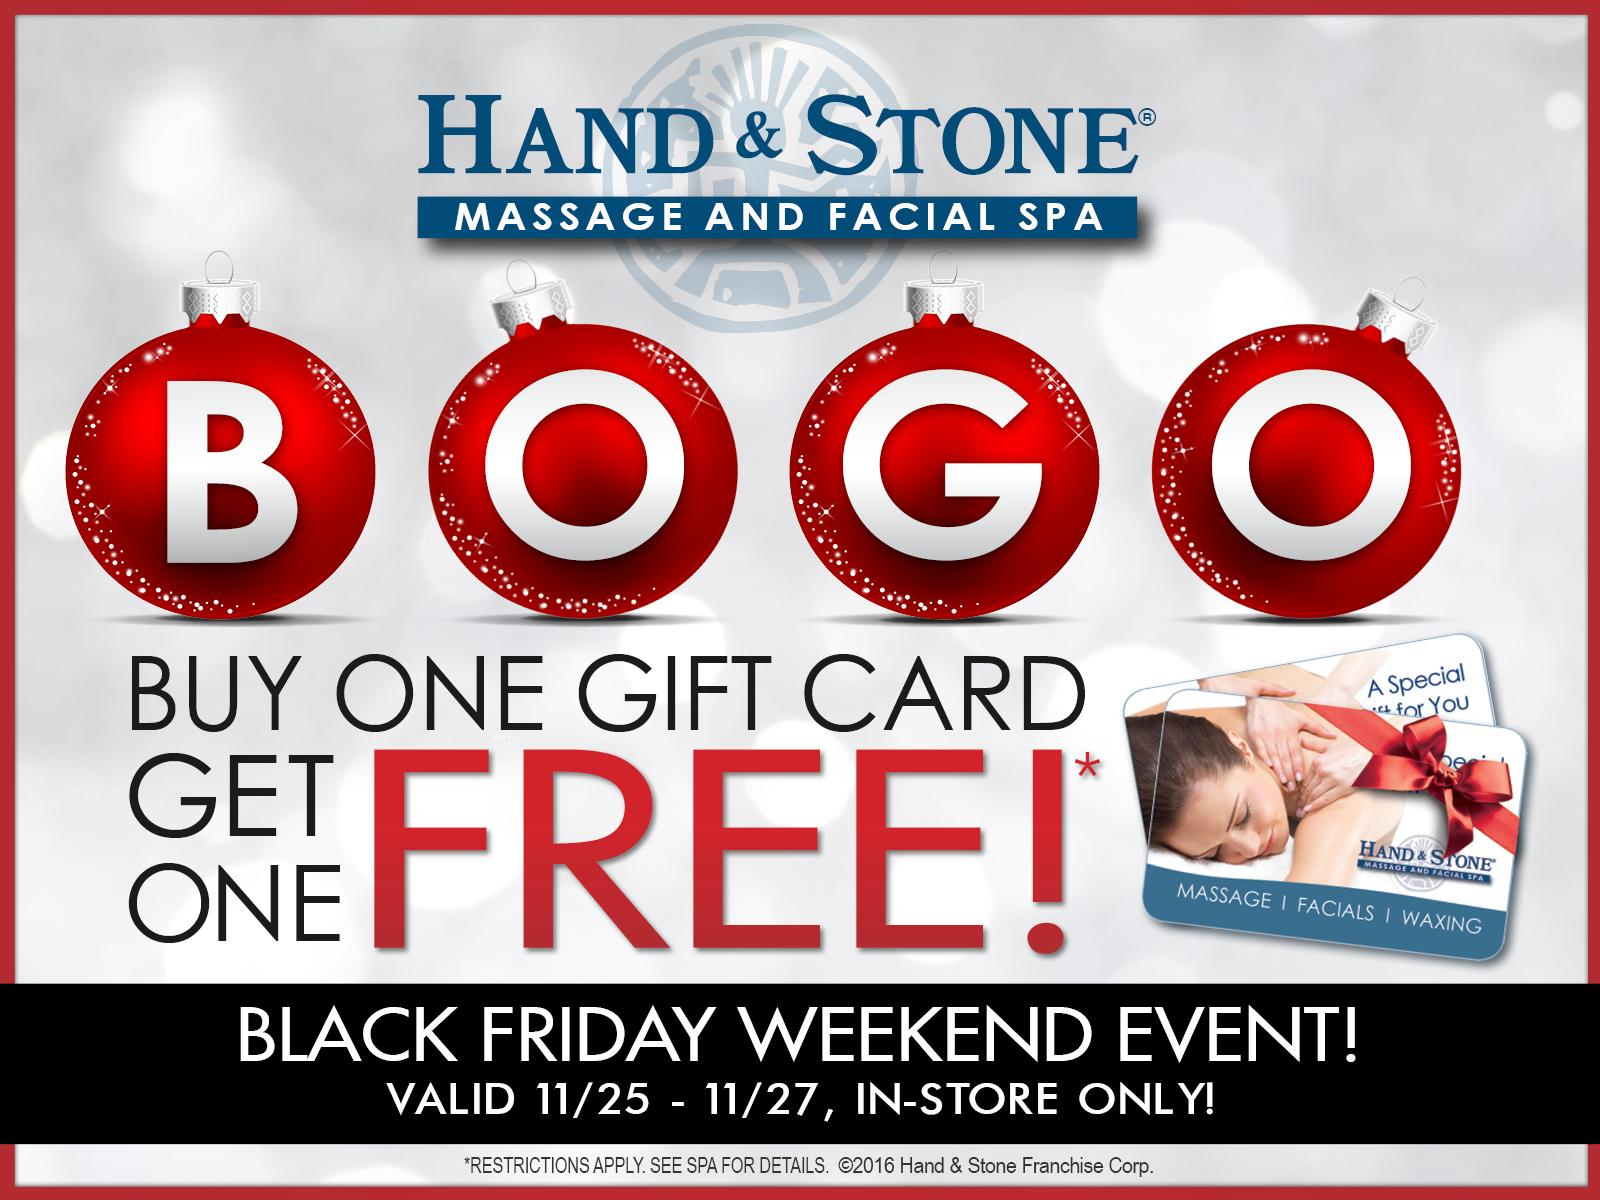 BOGO promo for Black Friday weekend 2016!